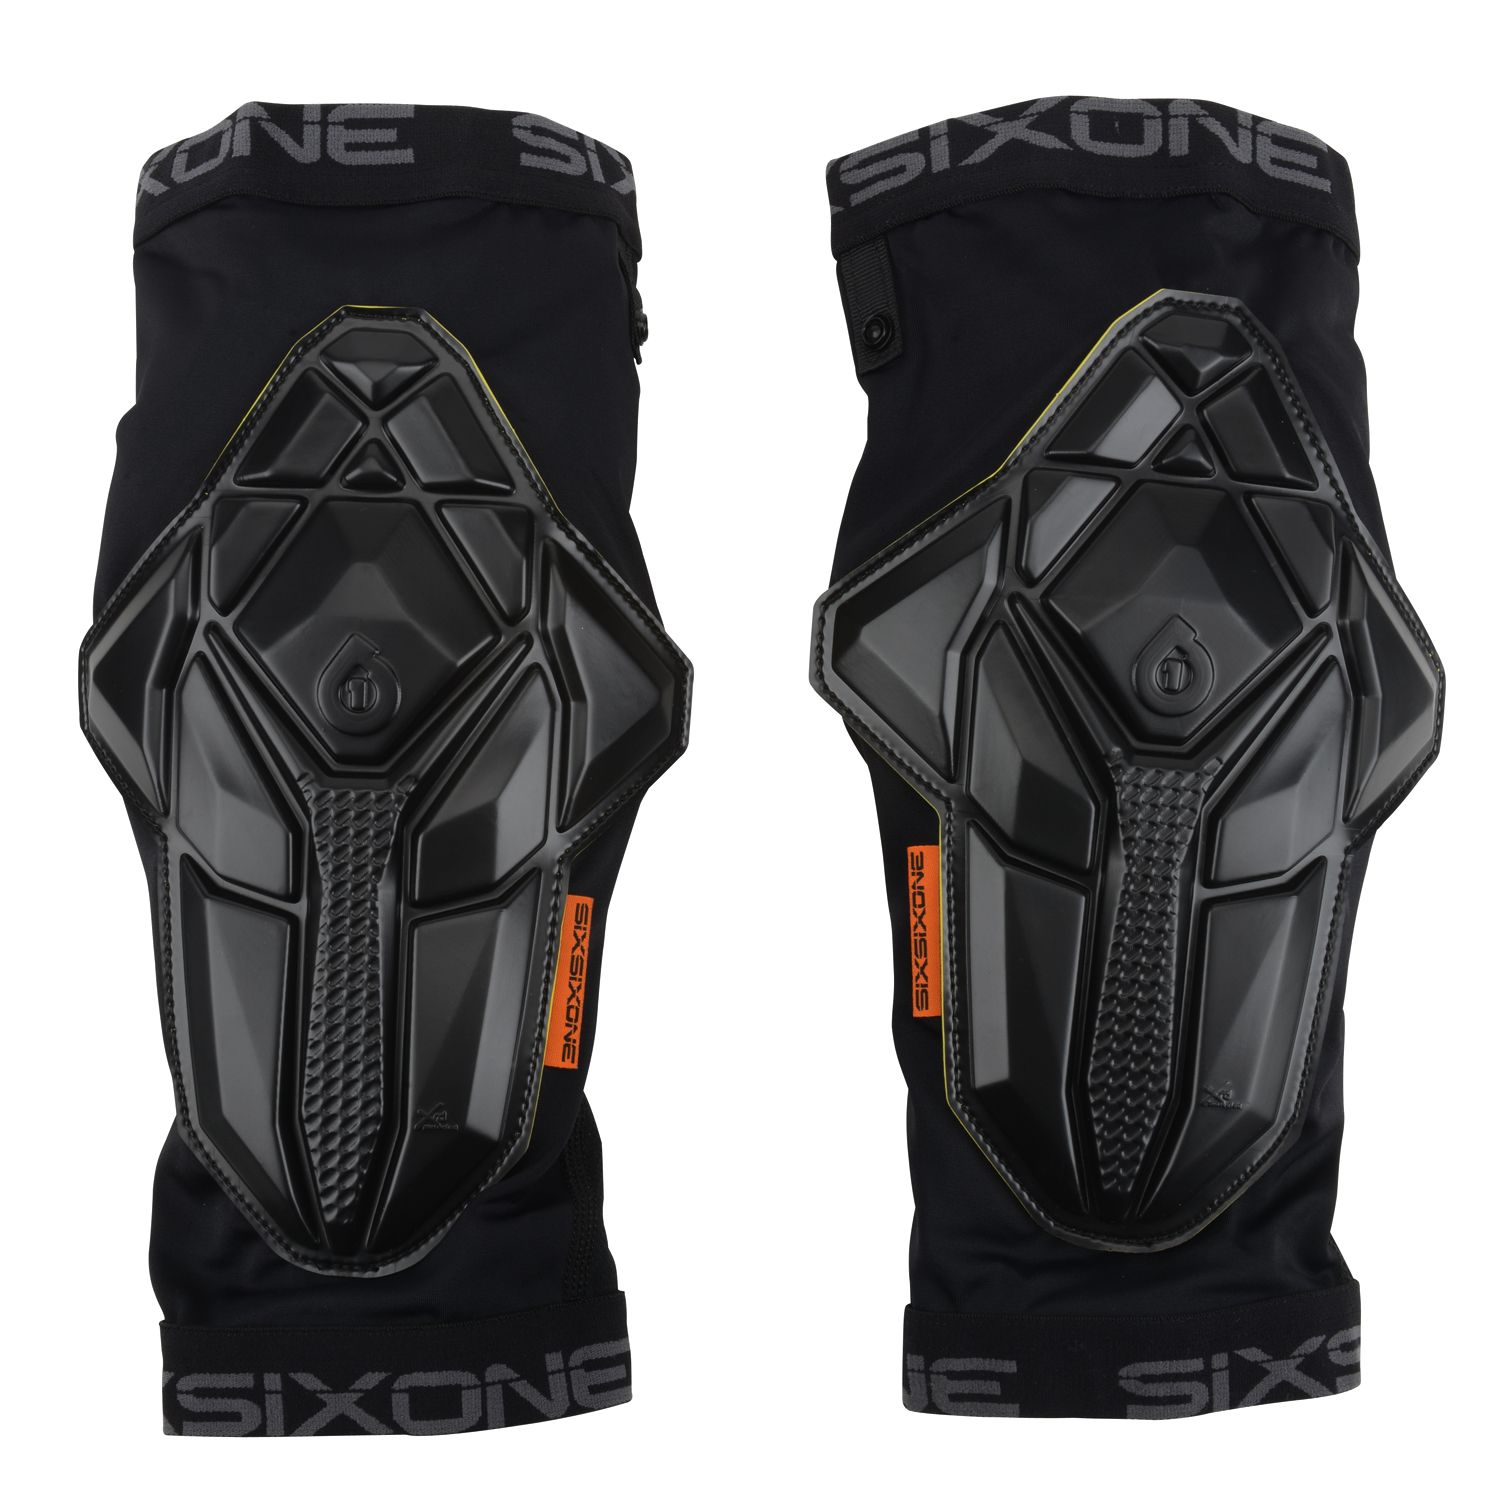 661 Recon Knee Pads 3359